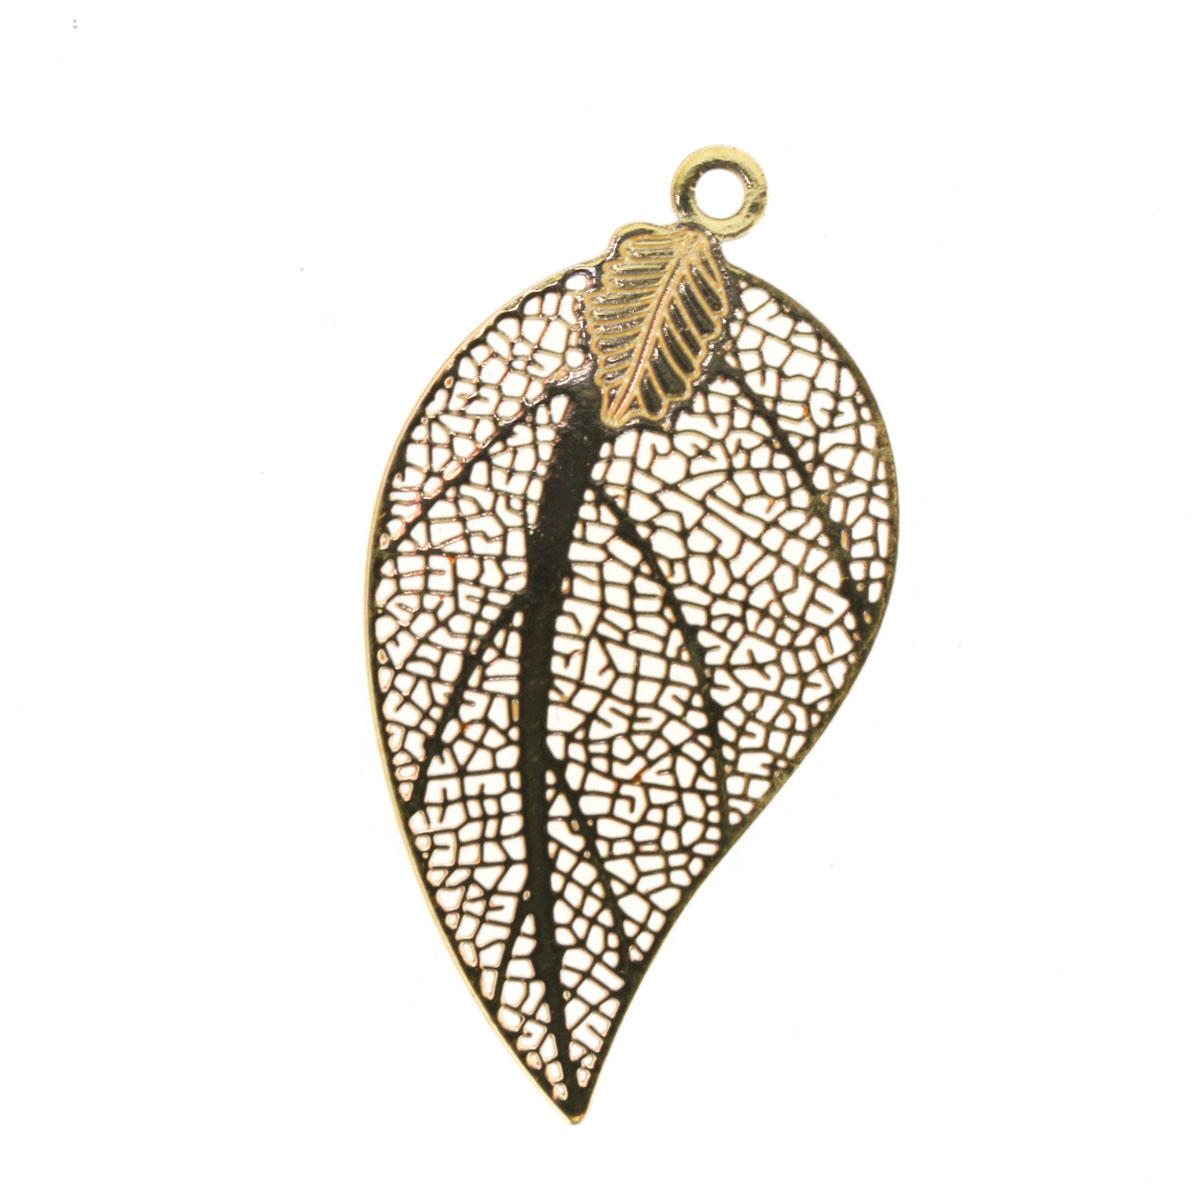 Gold Filigree Leaf Charm